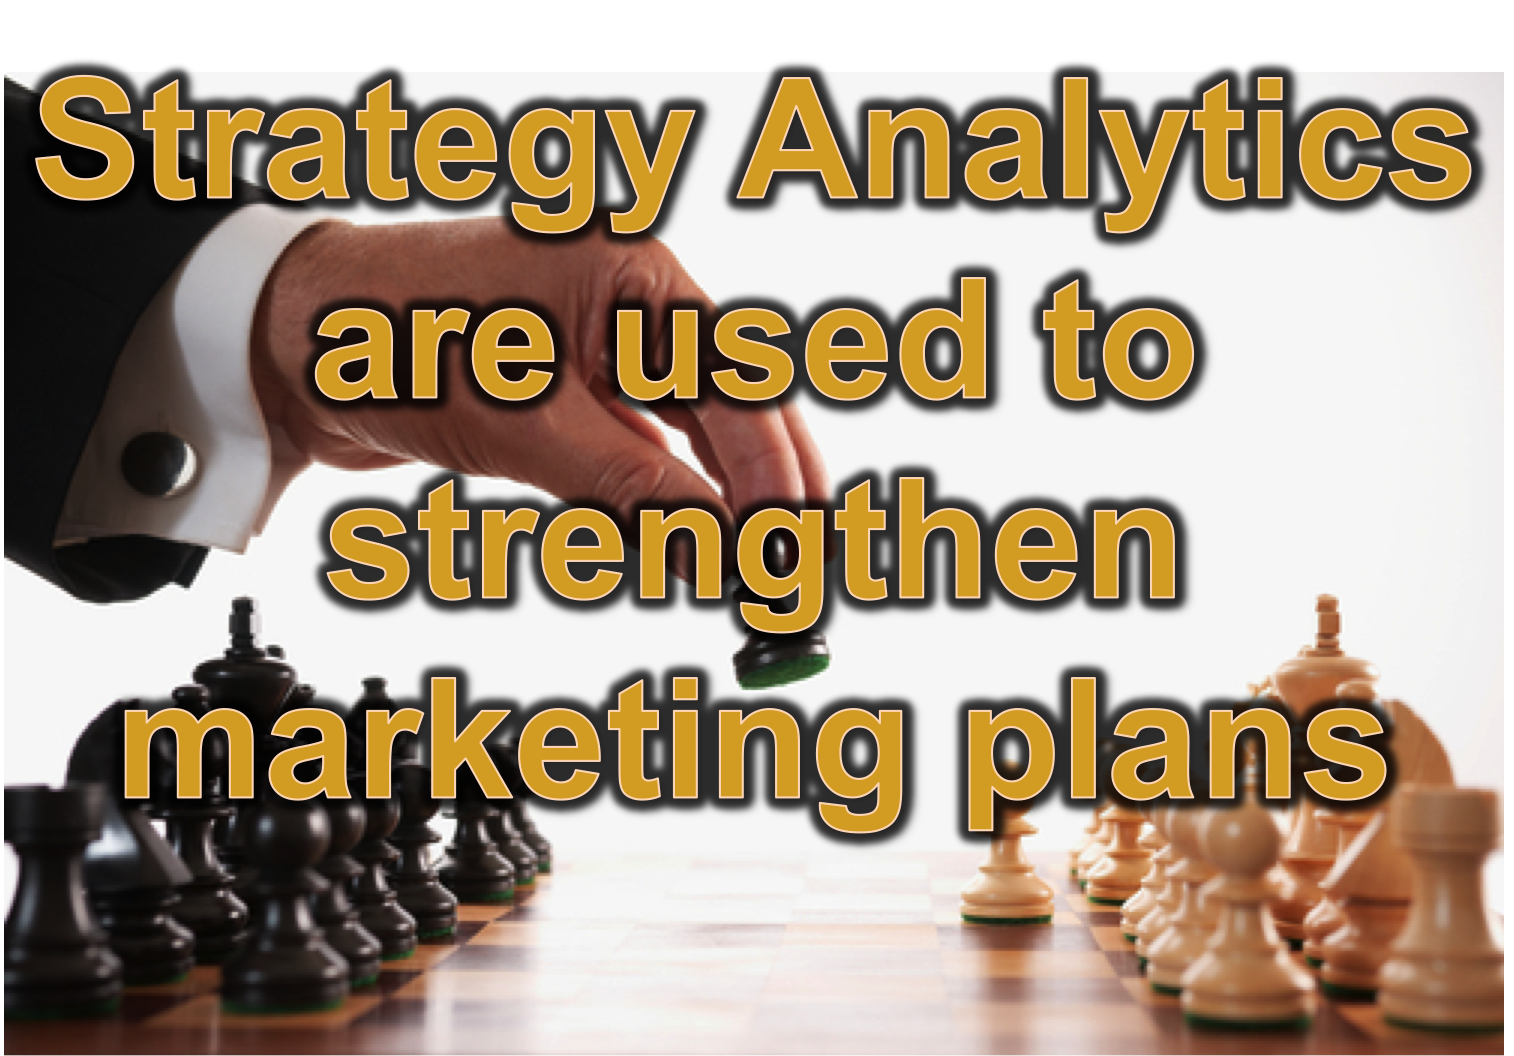 The use of Strategy Analytics are needed by all marketers.